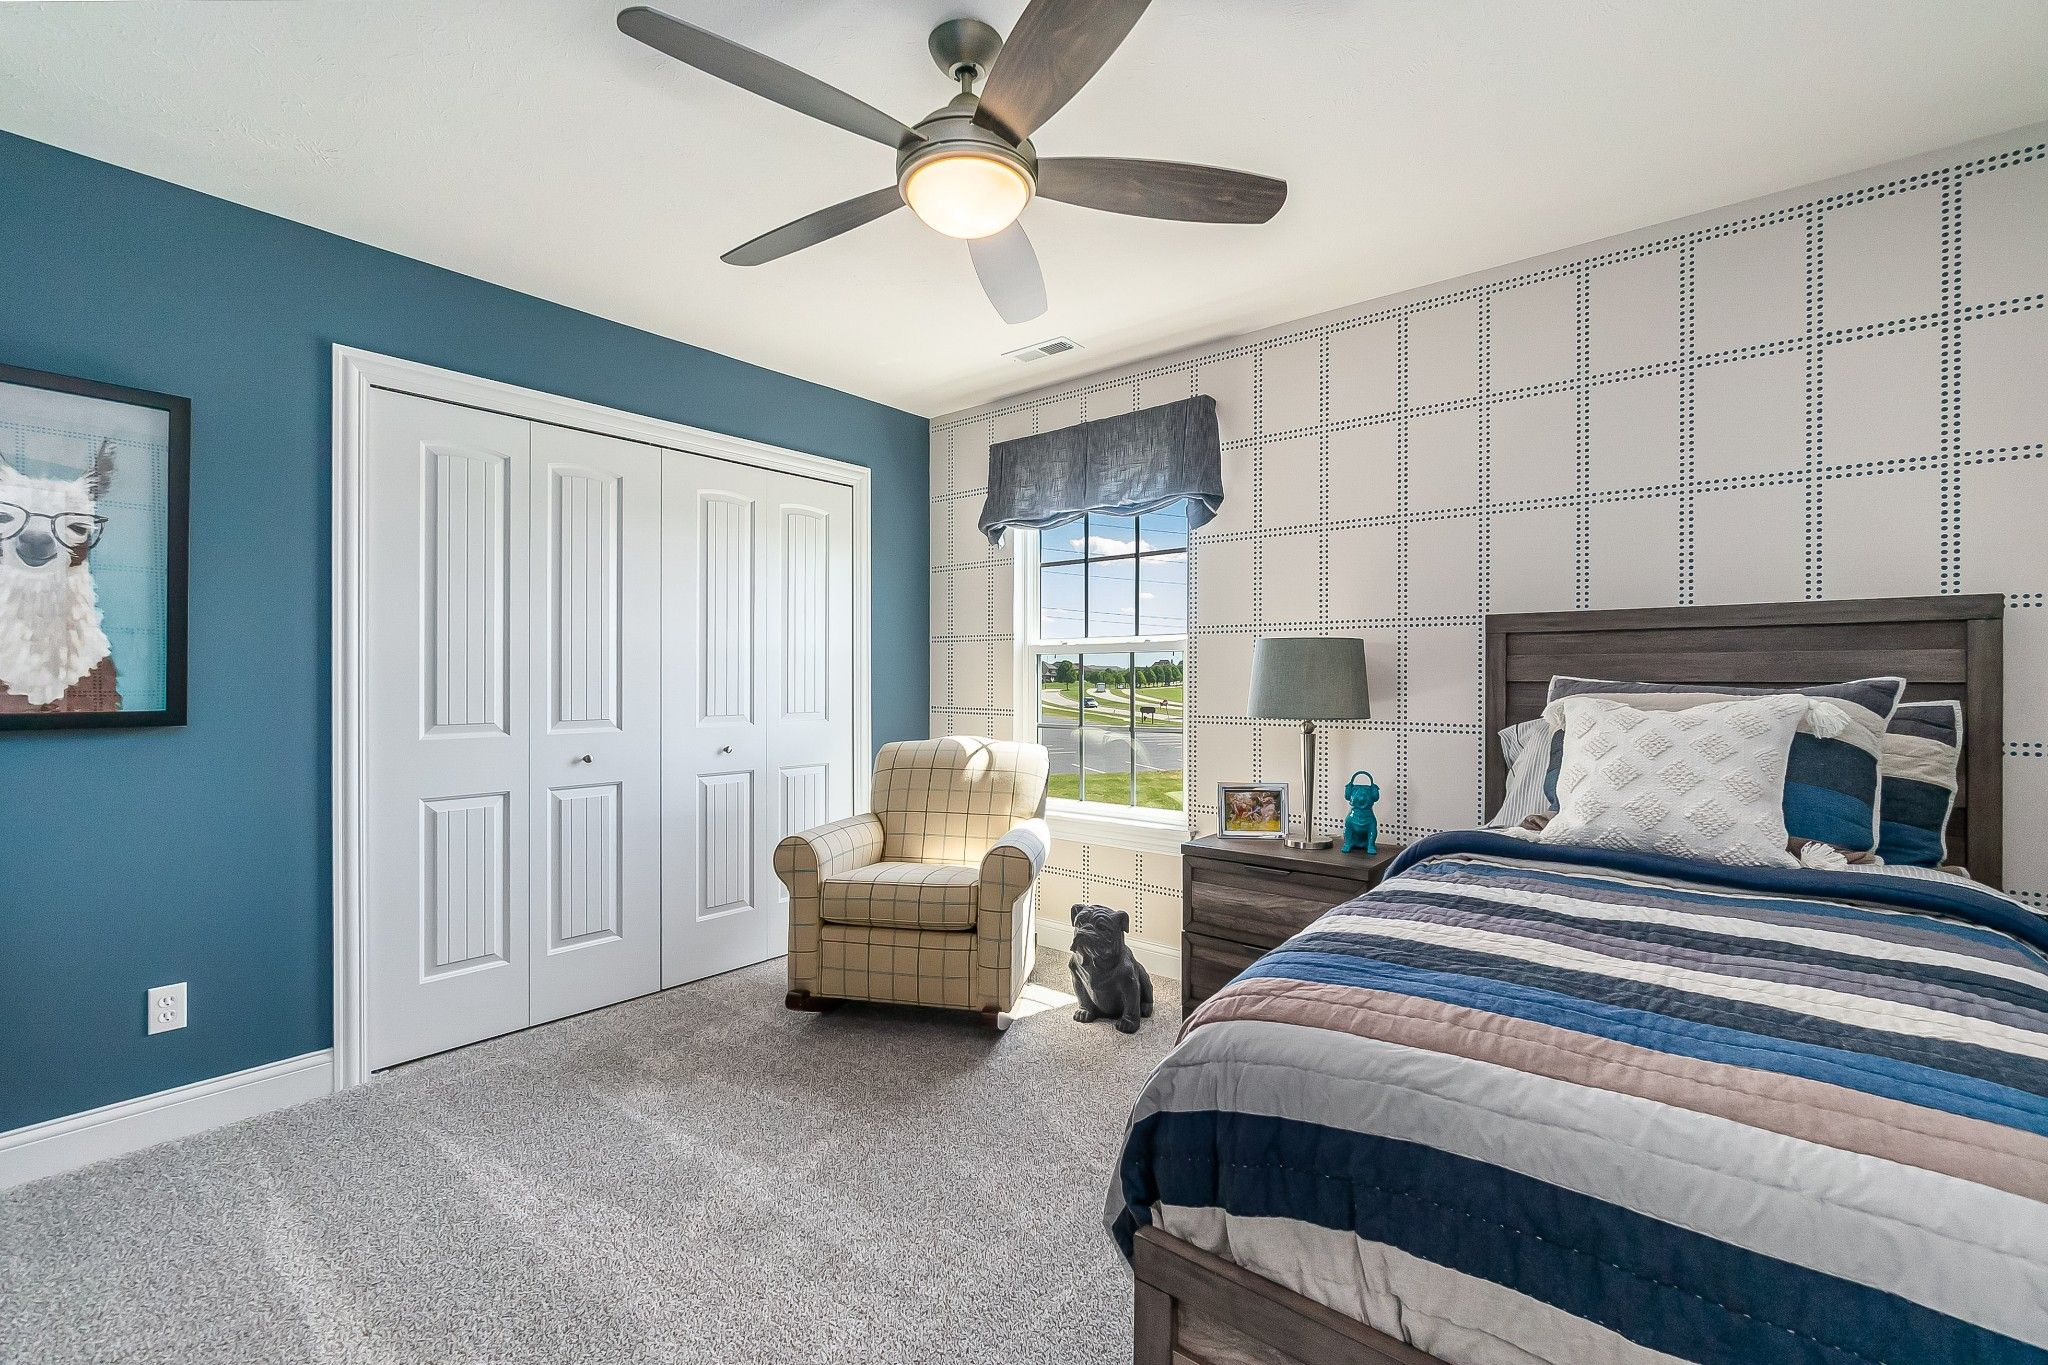 Bedroom featured in the Sierra By Olthof Homes in Gary, IN